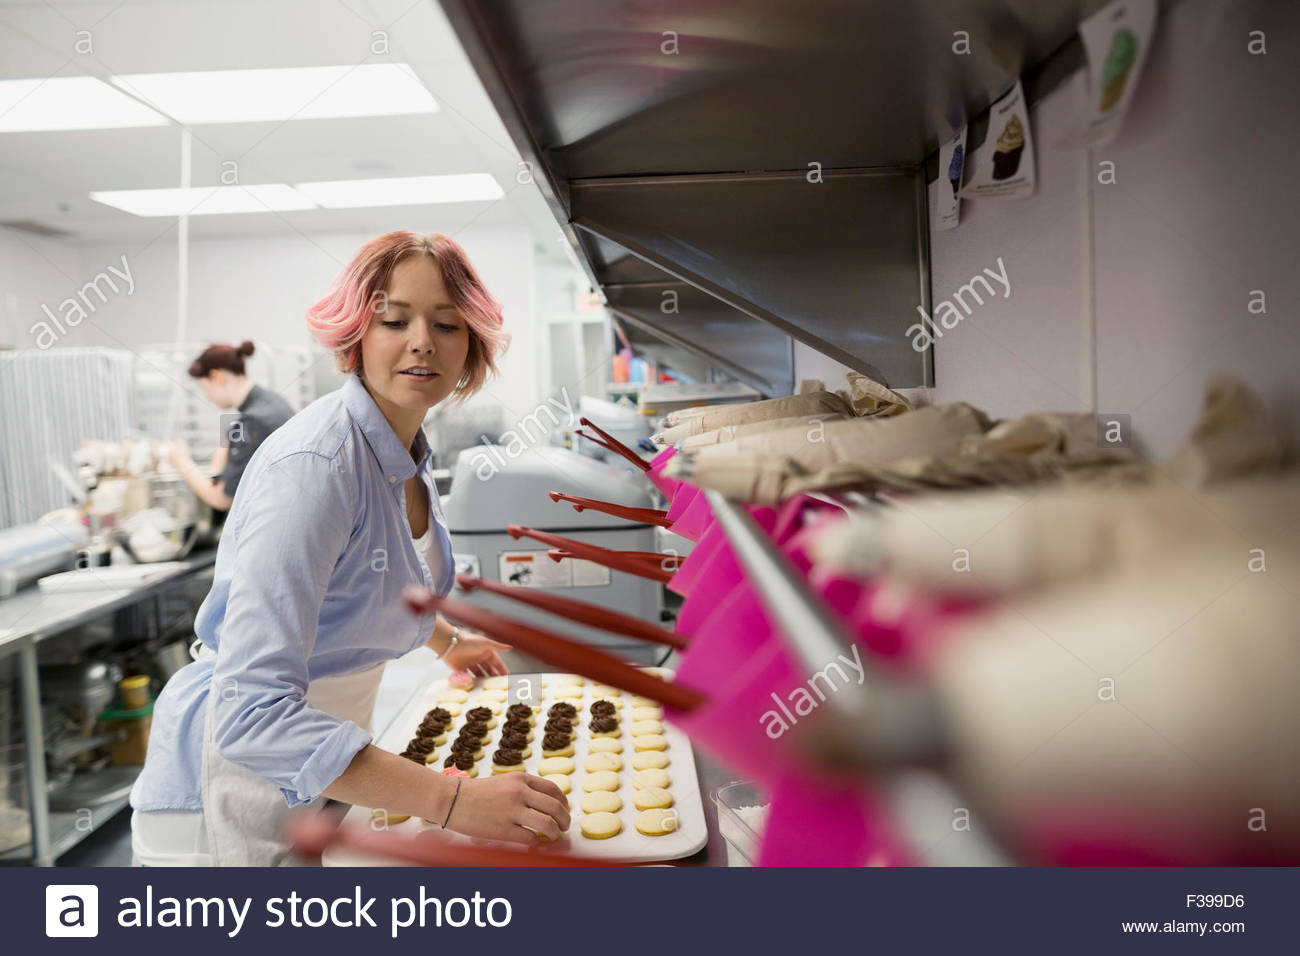 Pastry chef baking cookies in commercial kitchen - Stock Image